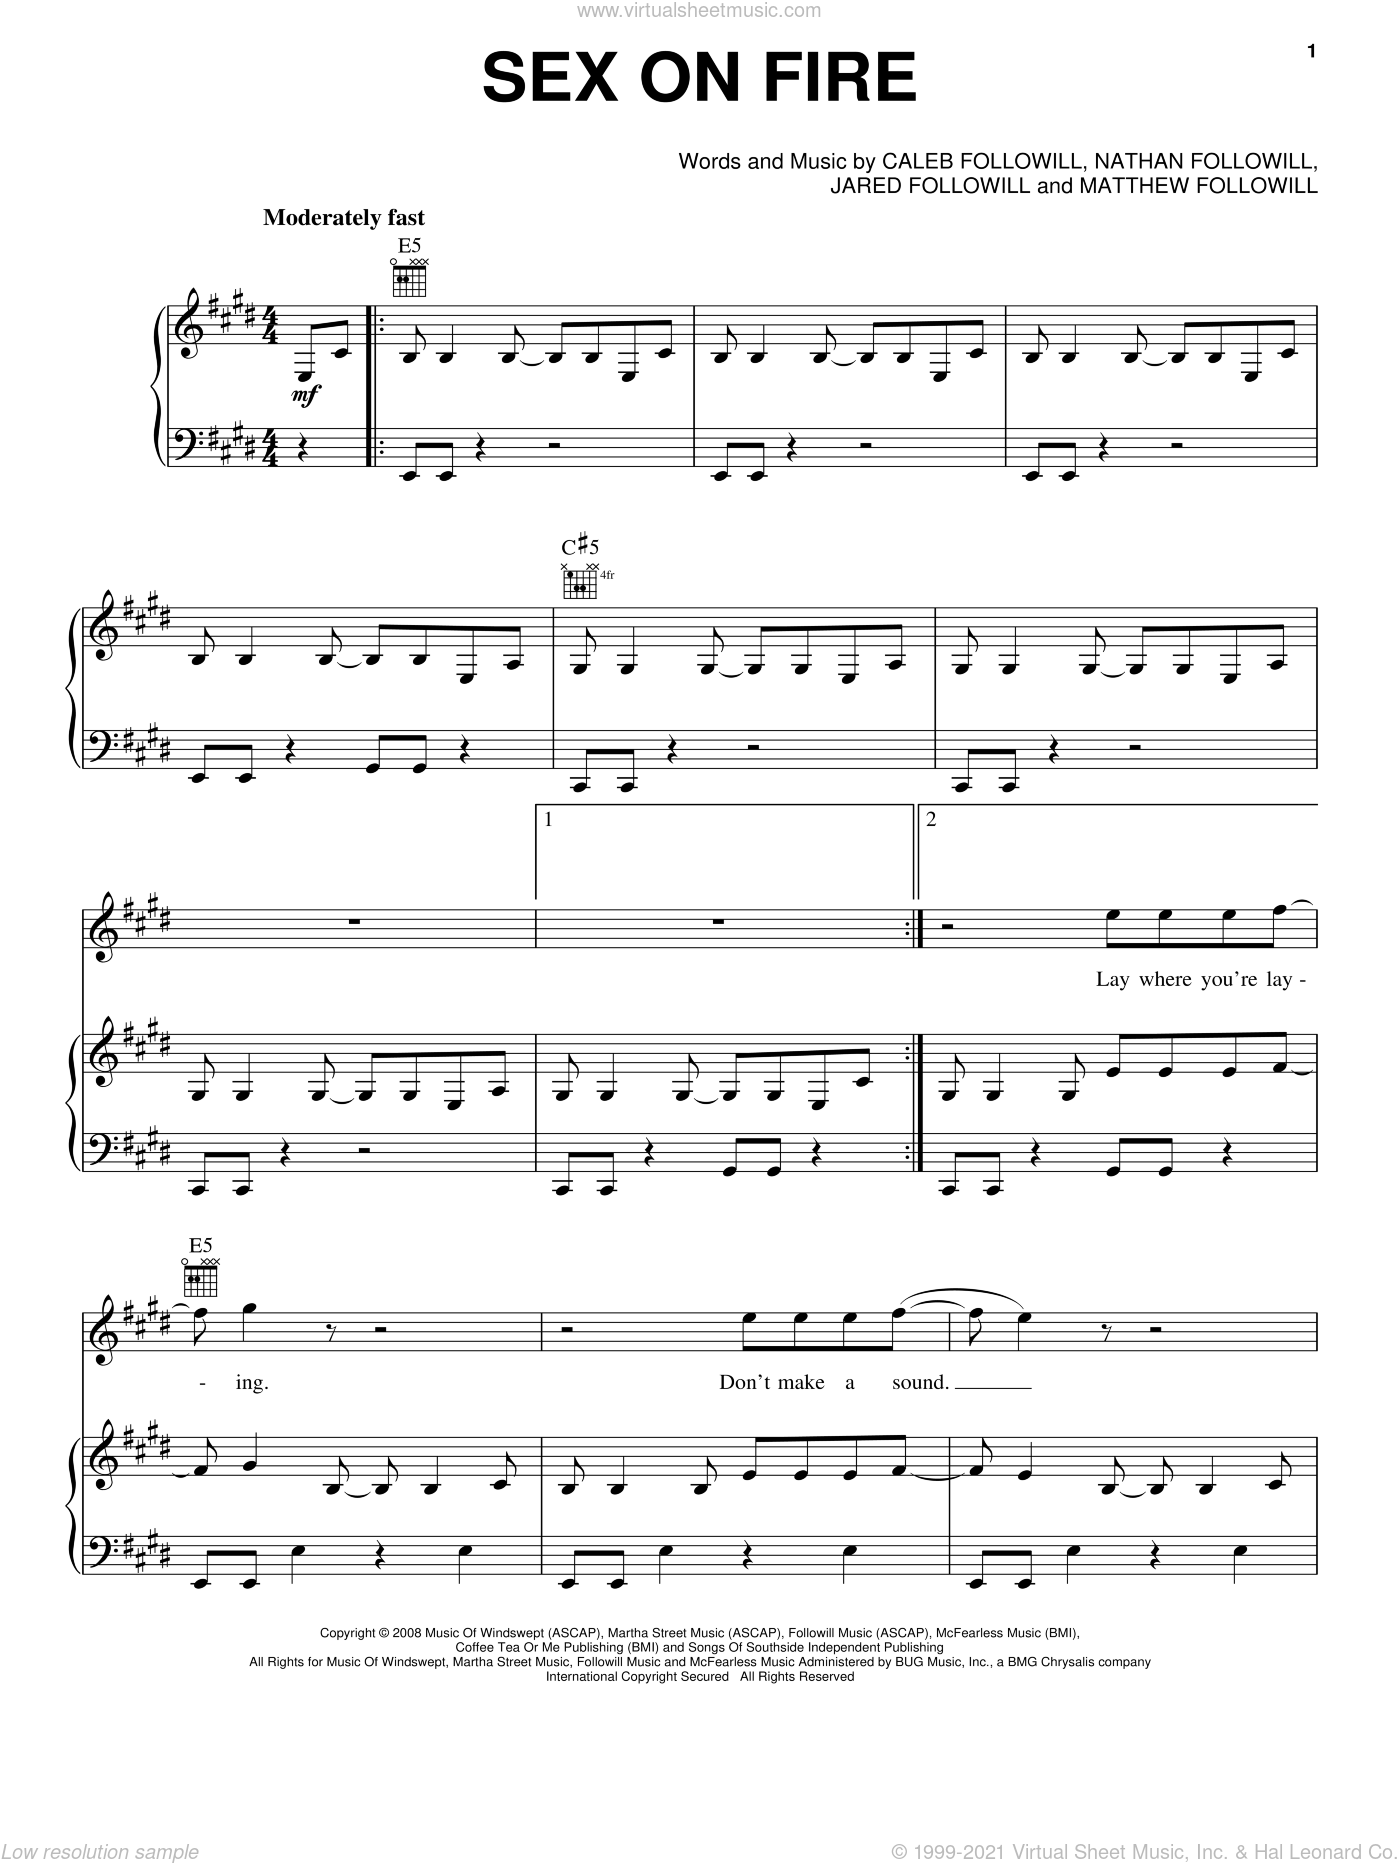 Sex On Fire sheet music for voice, piano or guitar by Nathan Followill, Kings Of Leon, Caleb Followill and Matthew Followill. Score Image Preview.